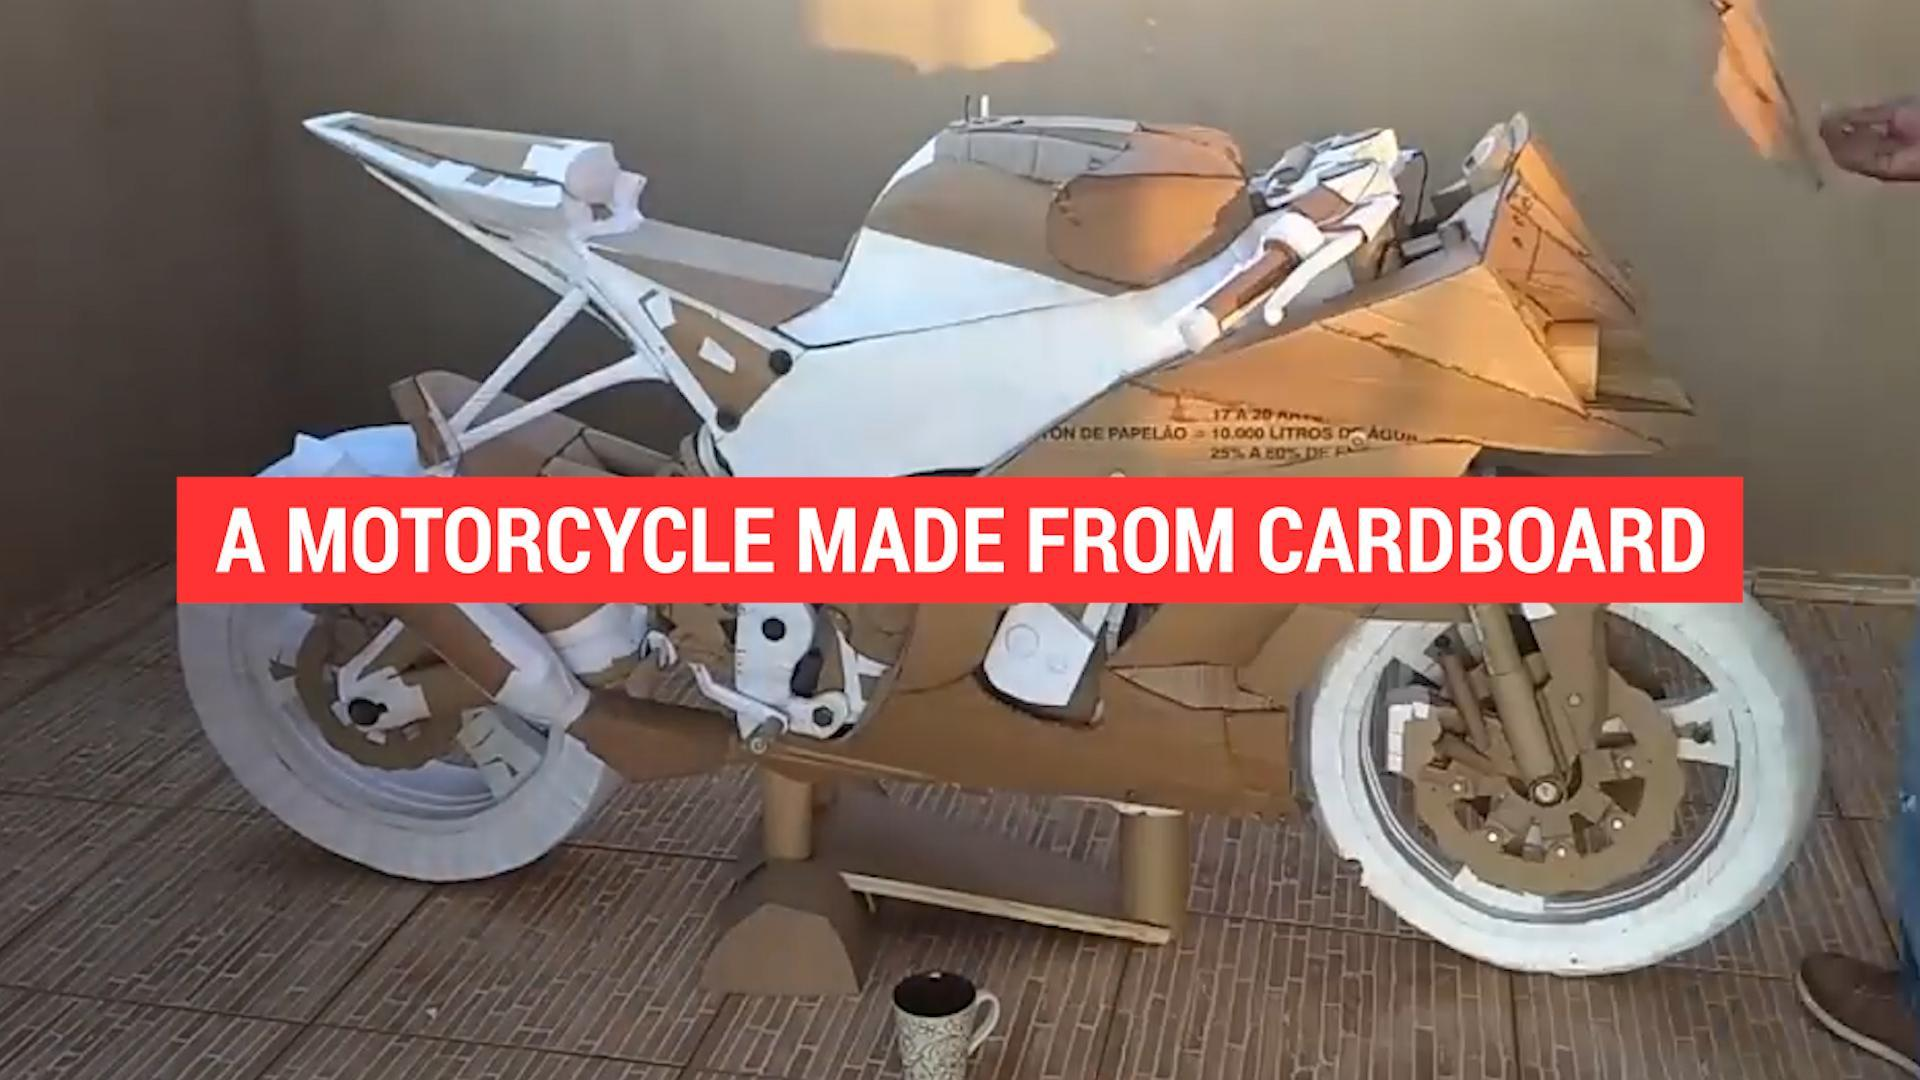 A motorcycle made from cardboard